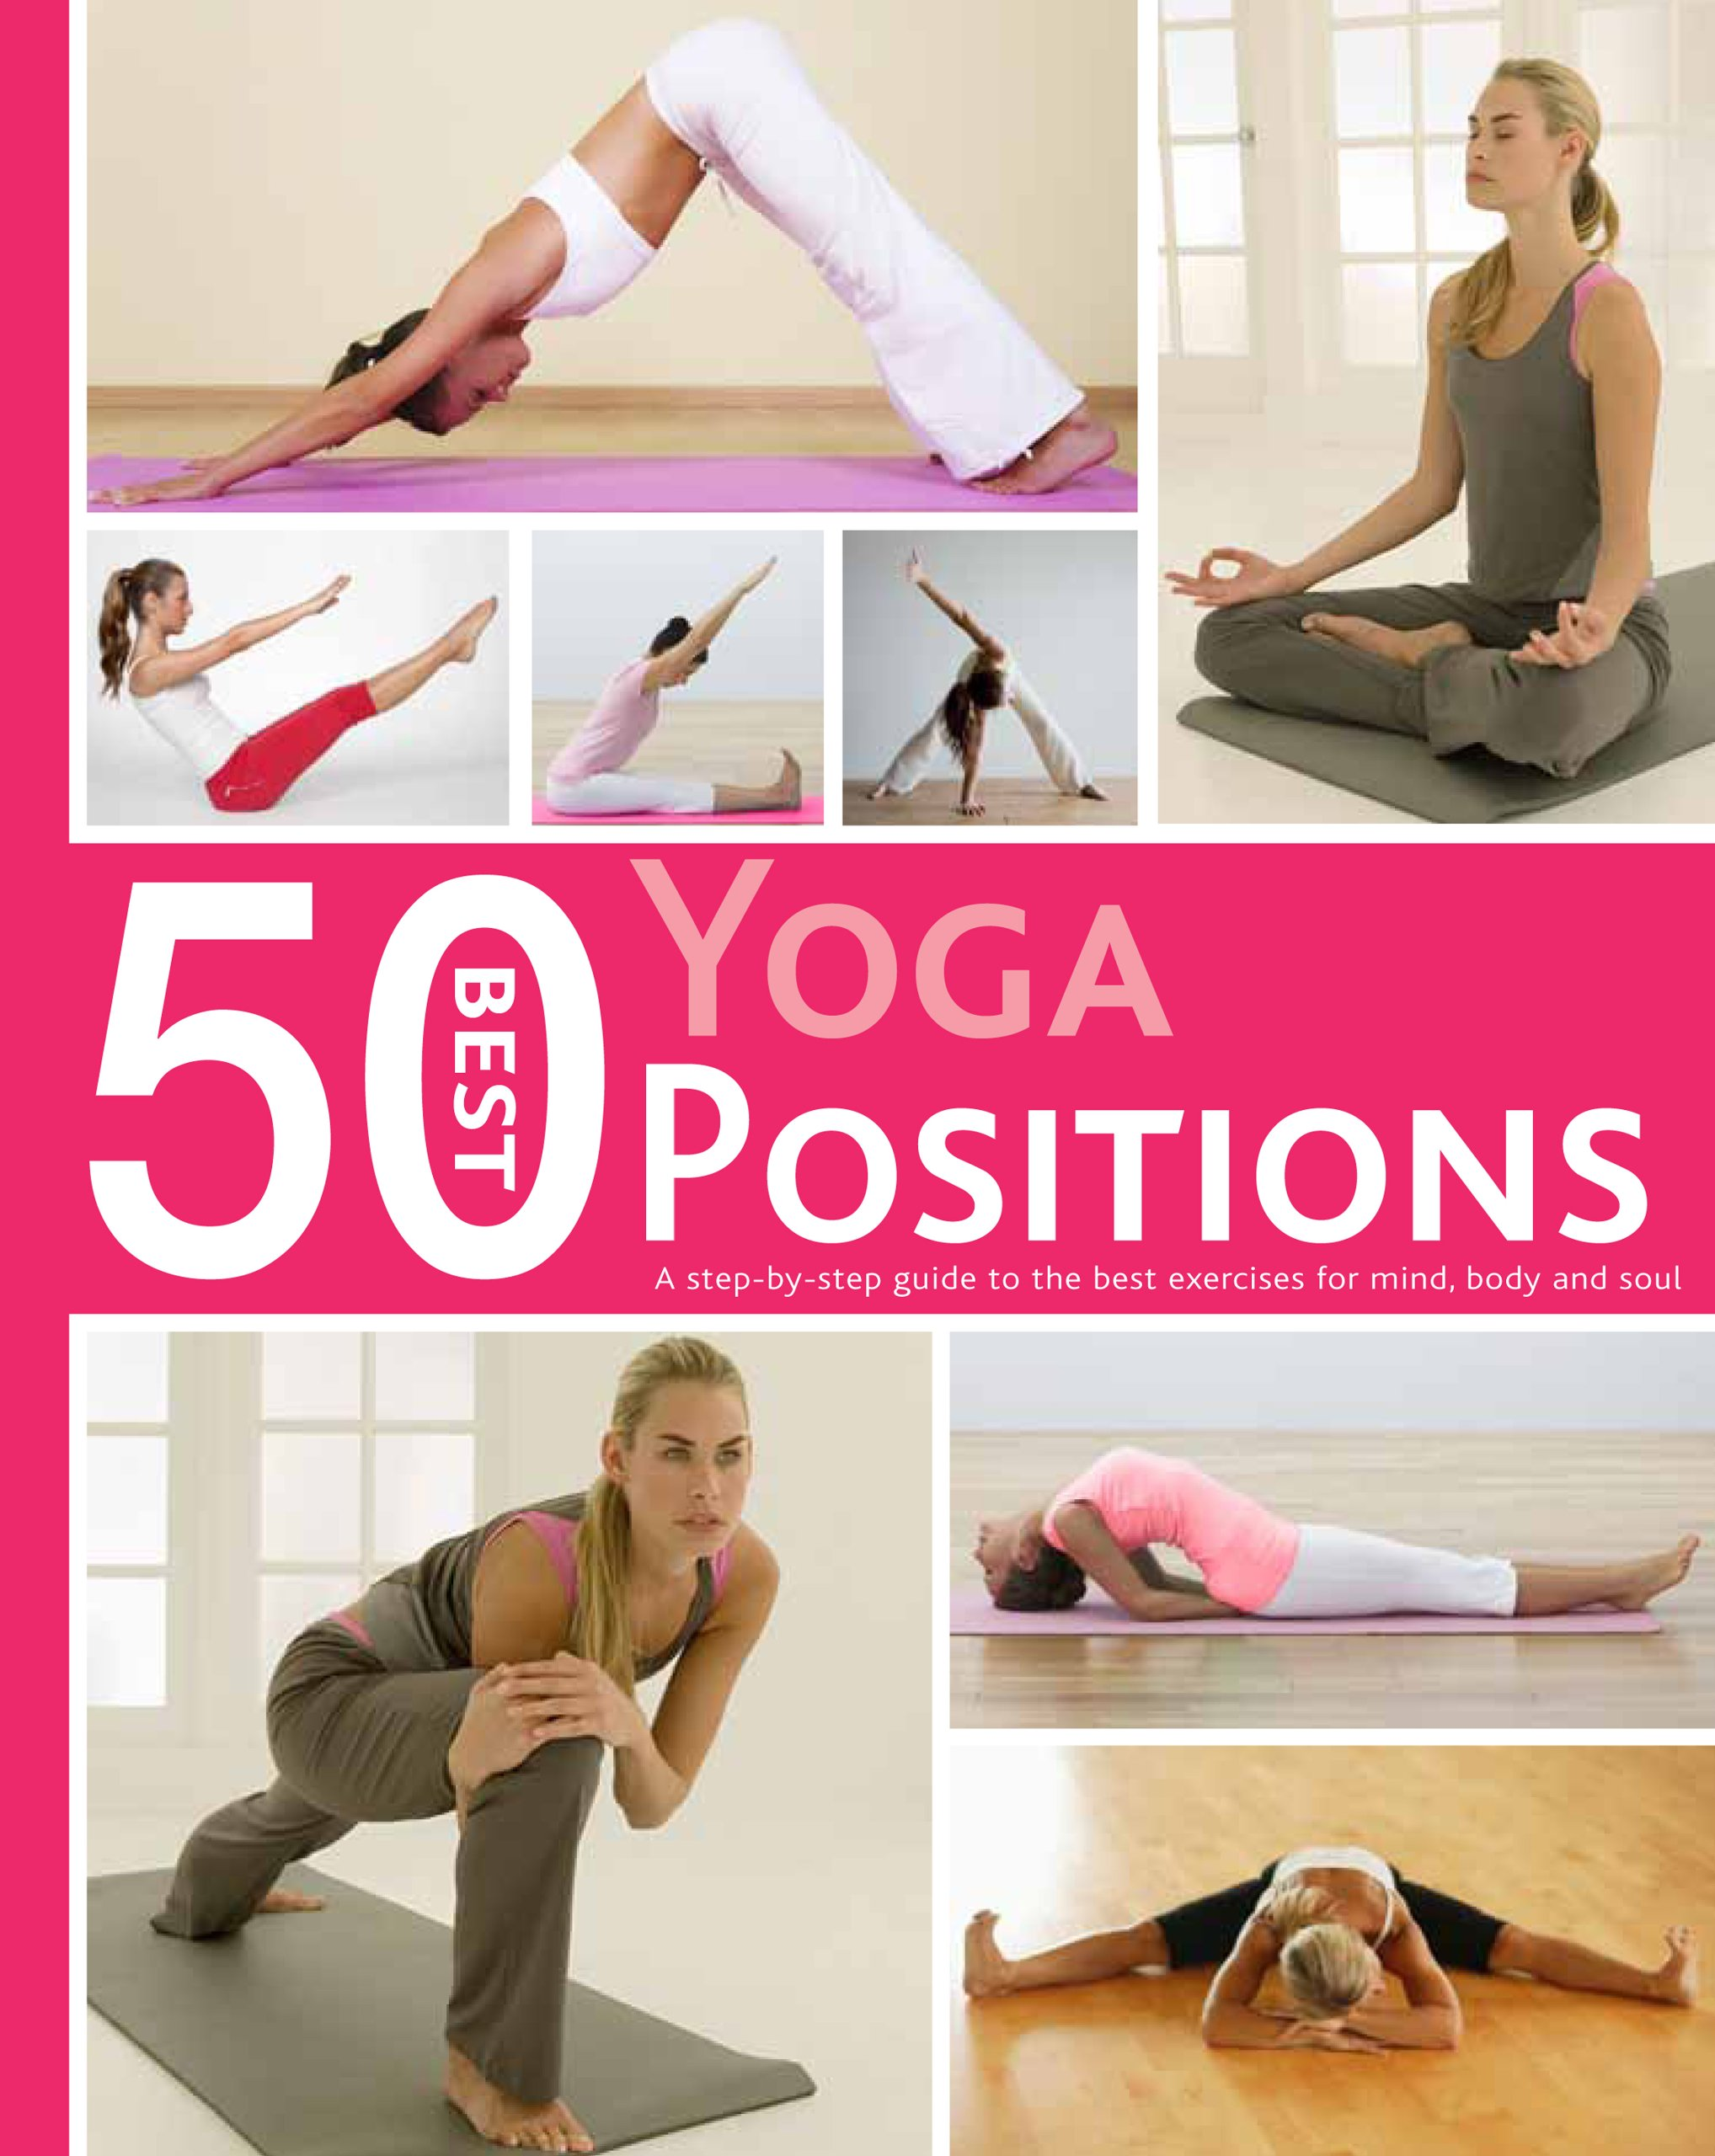 Yoga Positions Book